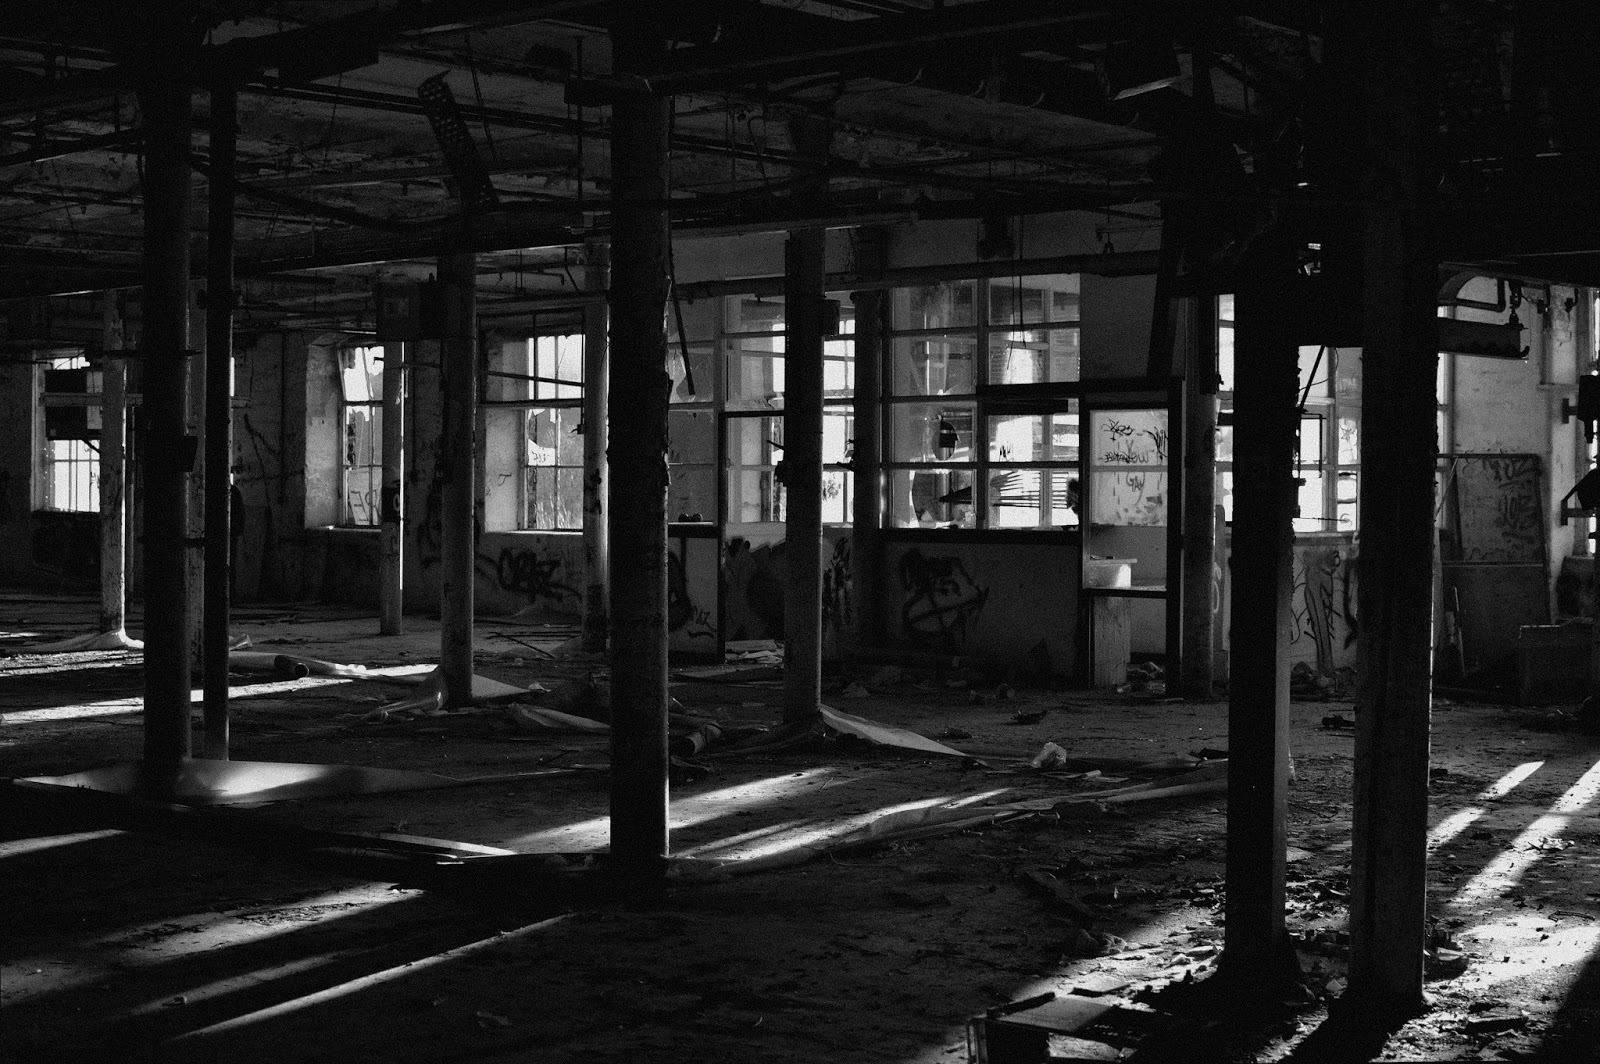 uncanny, texture, stillness, tone, memory, time, fragility, urbex, photography, black and white, tone, atmosphere, fothergill and harvey, rock nook mill, shadows, narrative, eerie, factory, abandoned, derelict, light, natural light, society, greater Manchester, Littleborough, industrial revolution, ruins, apocalypse, separation, place, explore, adventure,